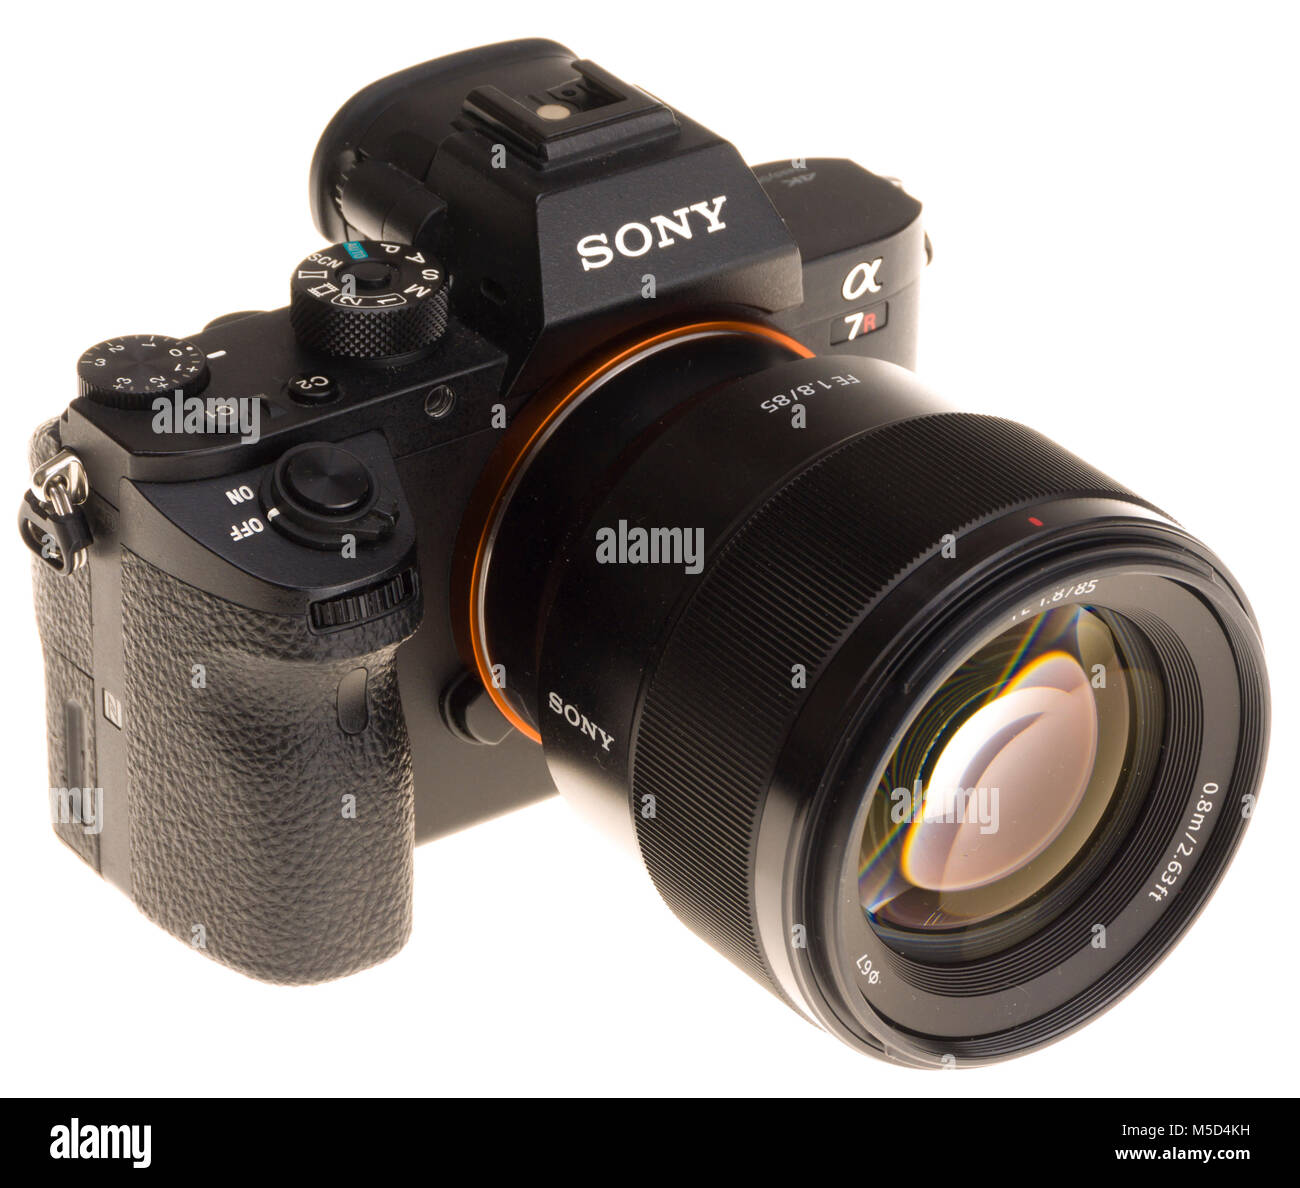 85mm Stock Photos Images Alamy Nikon Af F18d Sony Mirrorless Professional Full Frame Camera With F 18 Portrait Short Telephoto Lens